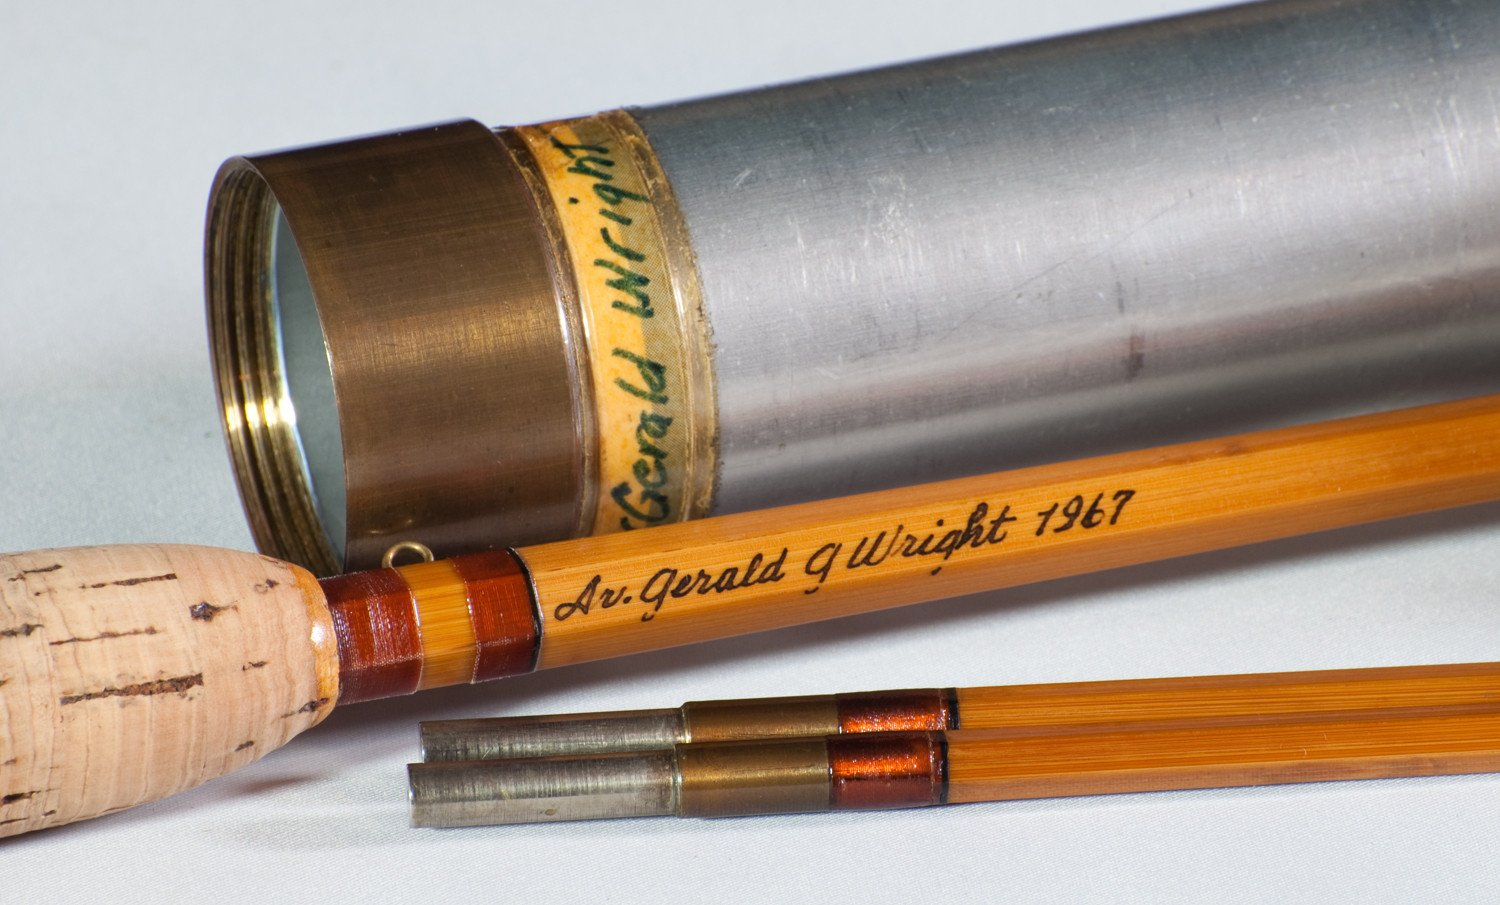 Lyle Dickerson -- Model 8014 Bamboo Rod